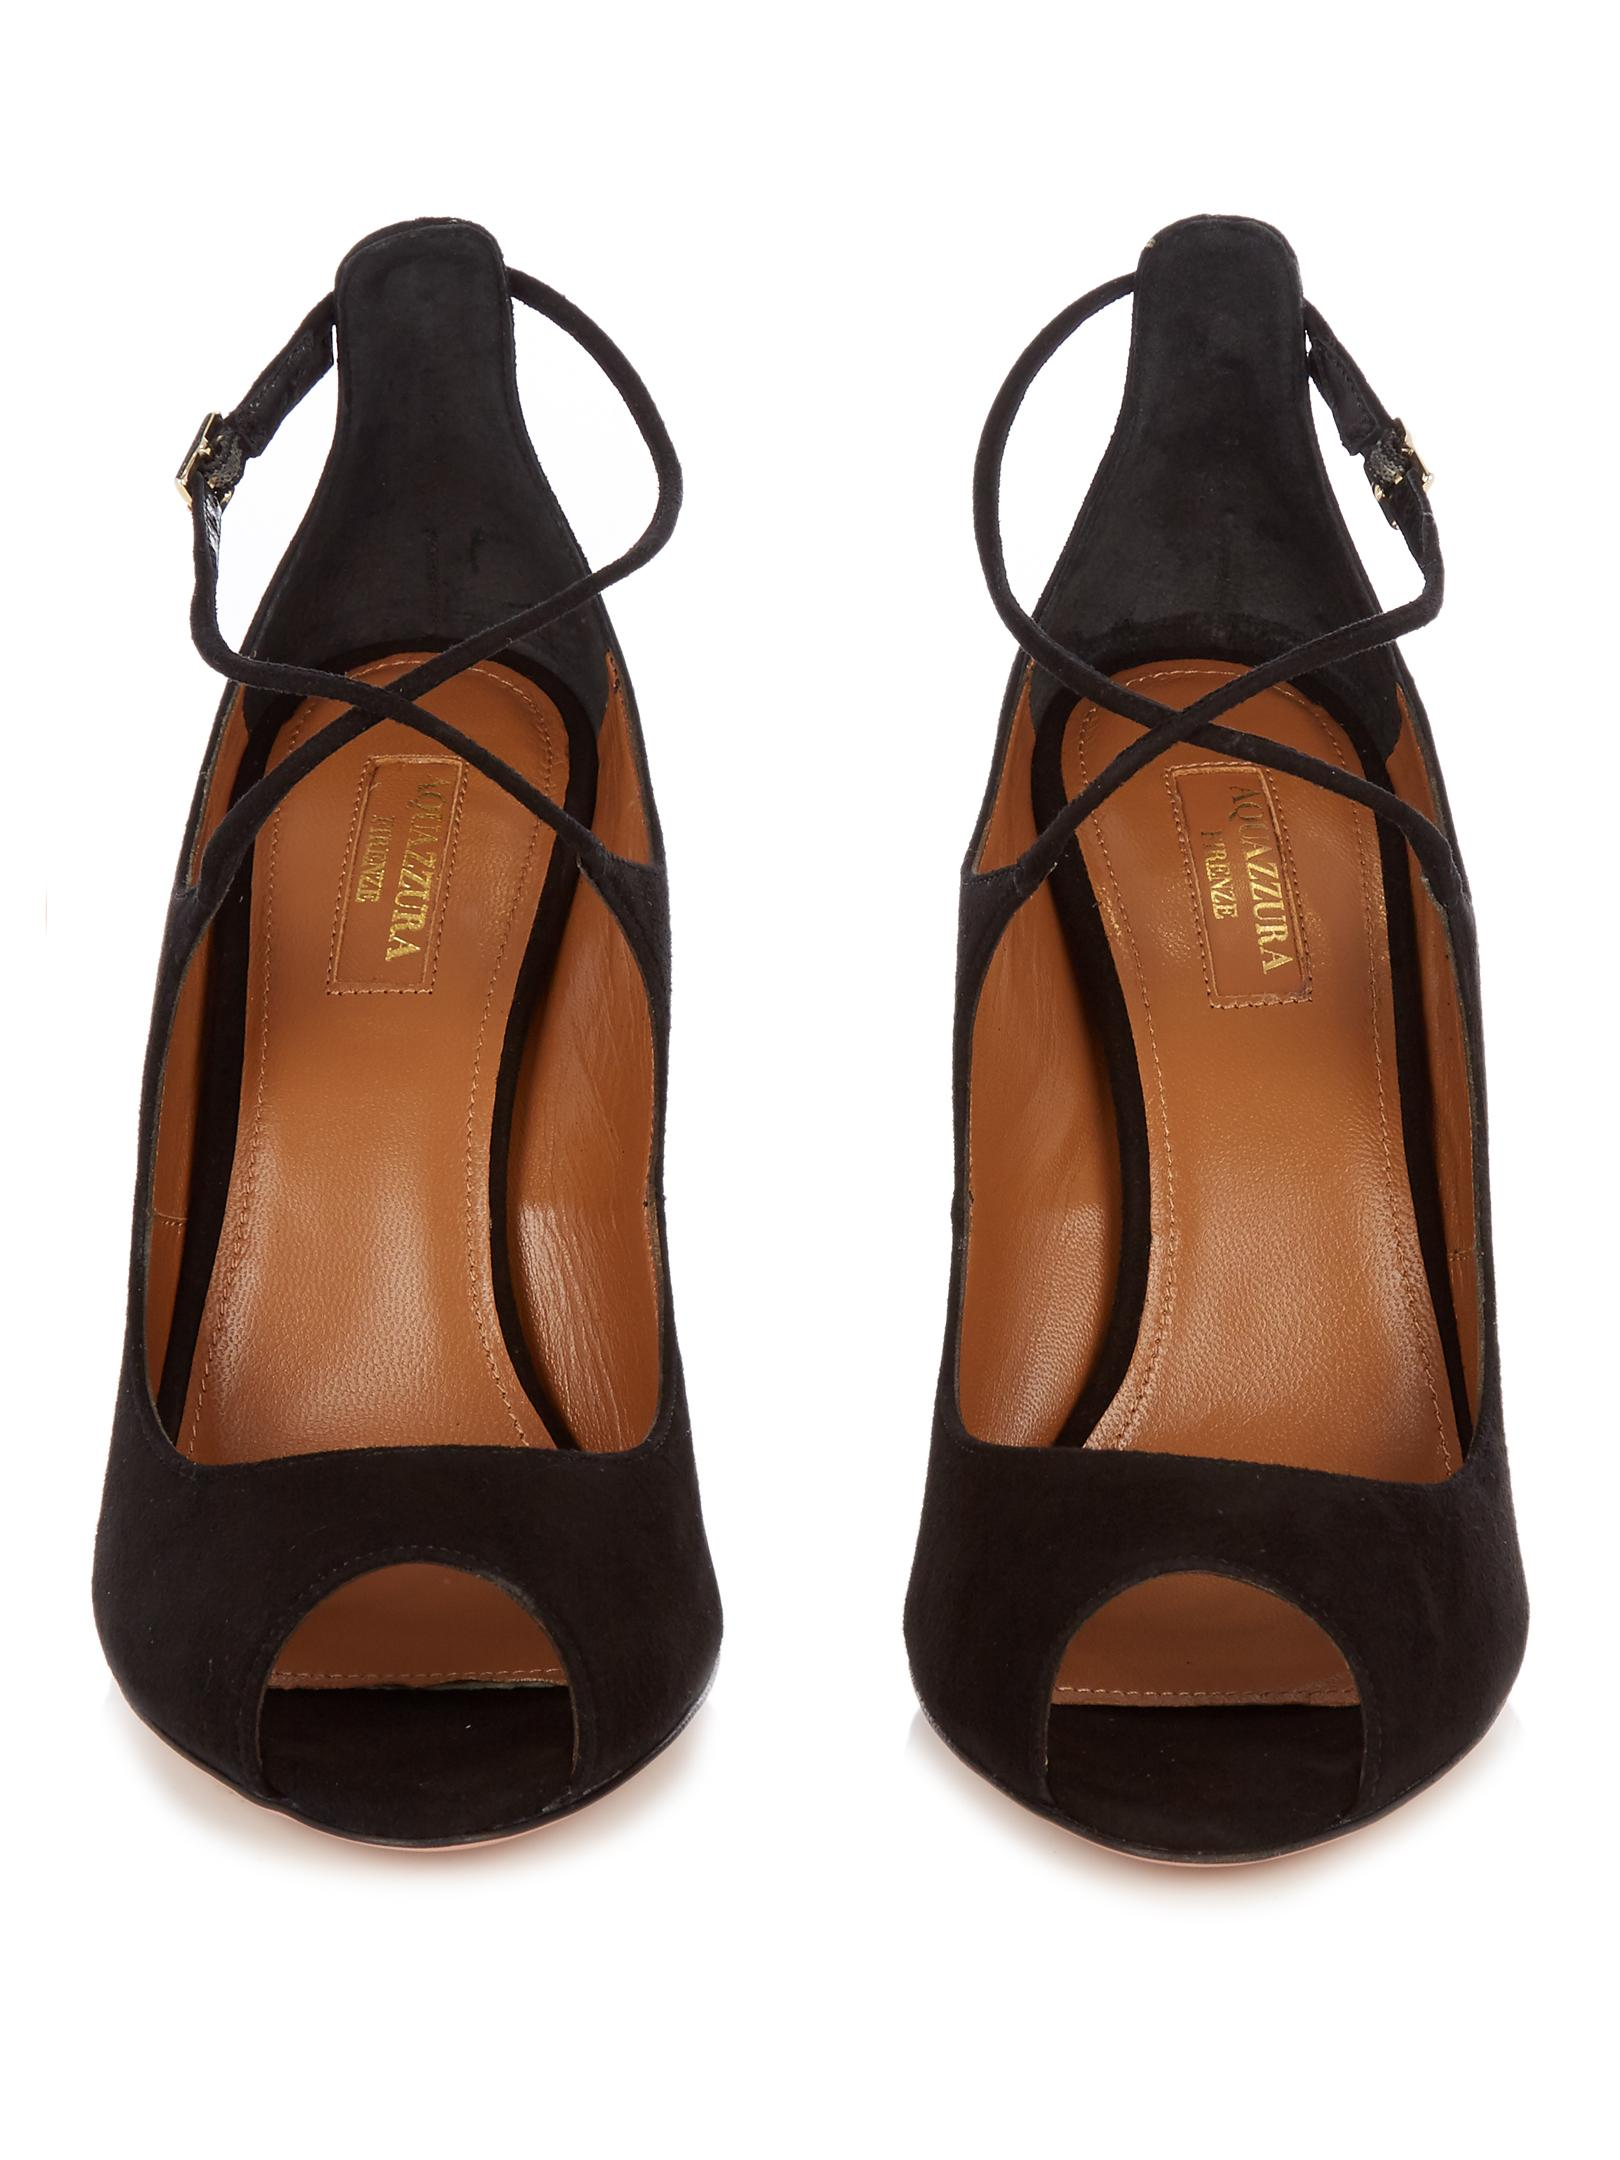 Black Suede Shoes With Cross Straps